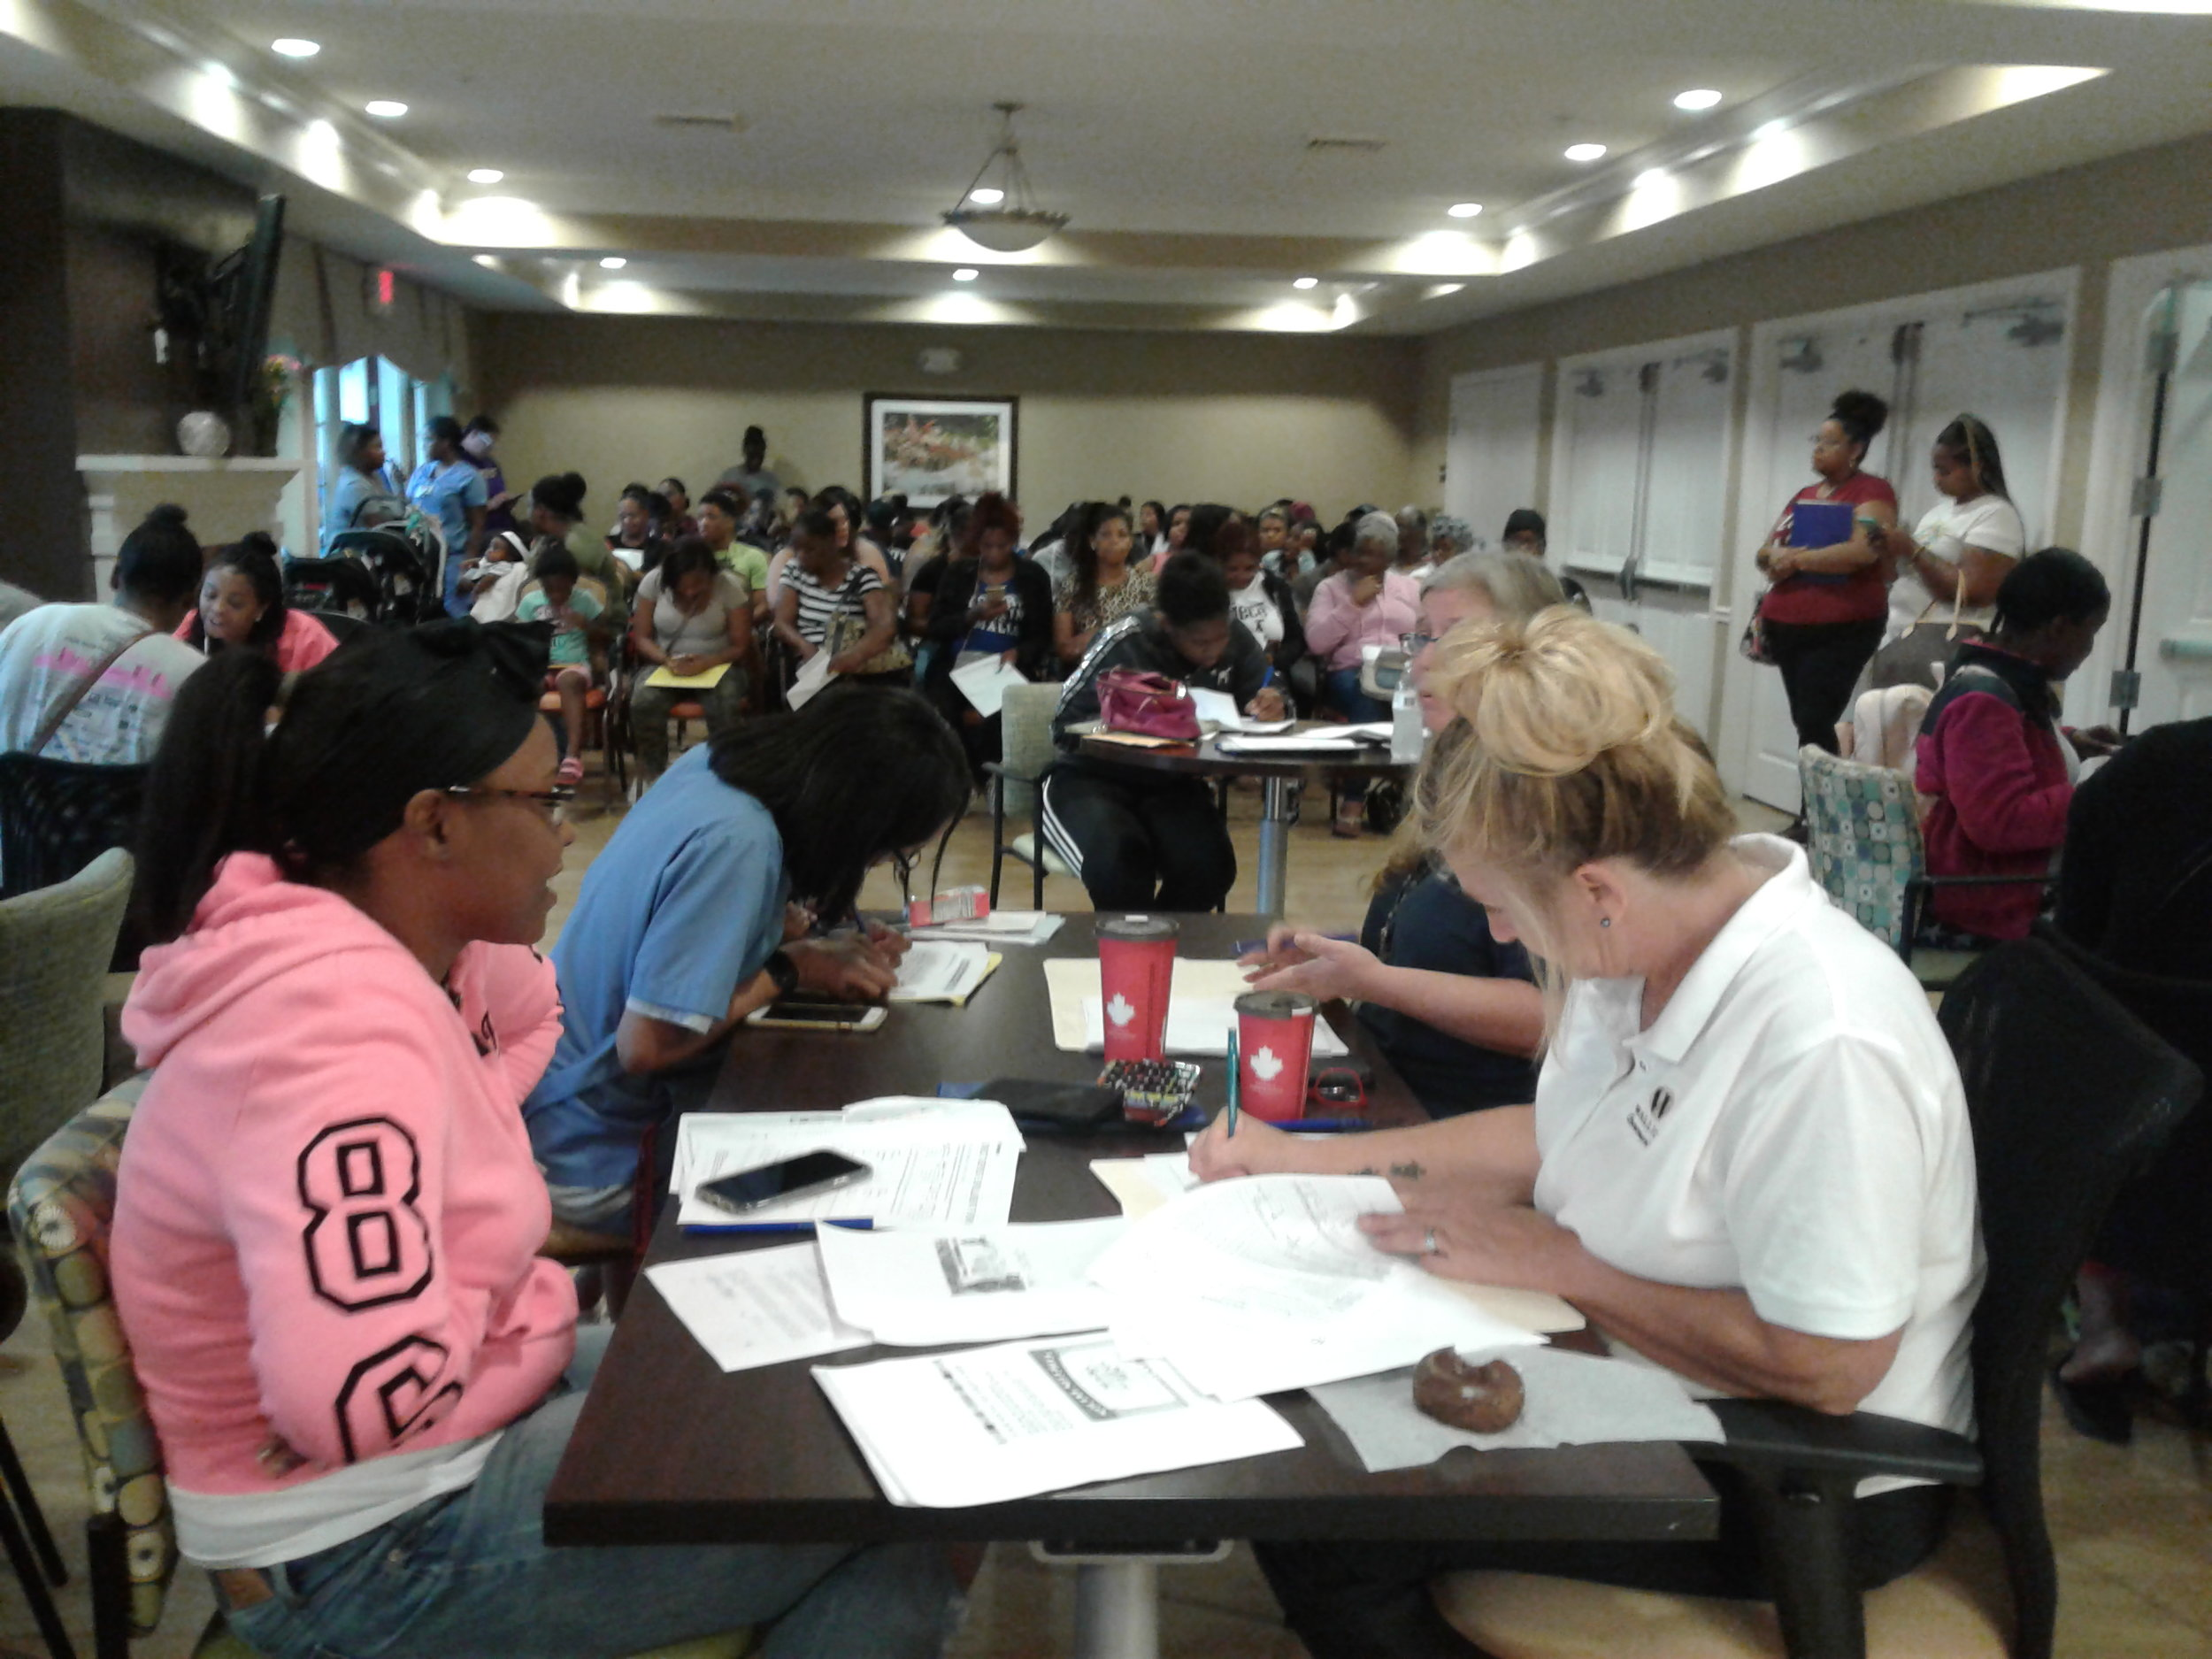 Applicants for Homeport's Blacklick Crossing development in Reynoldsburg filled the intake room set up at Eastway Village apartments in Whitehall.